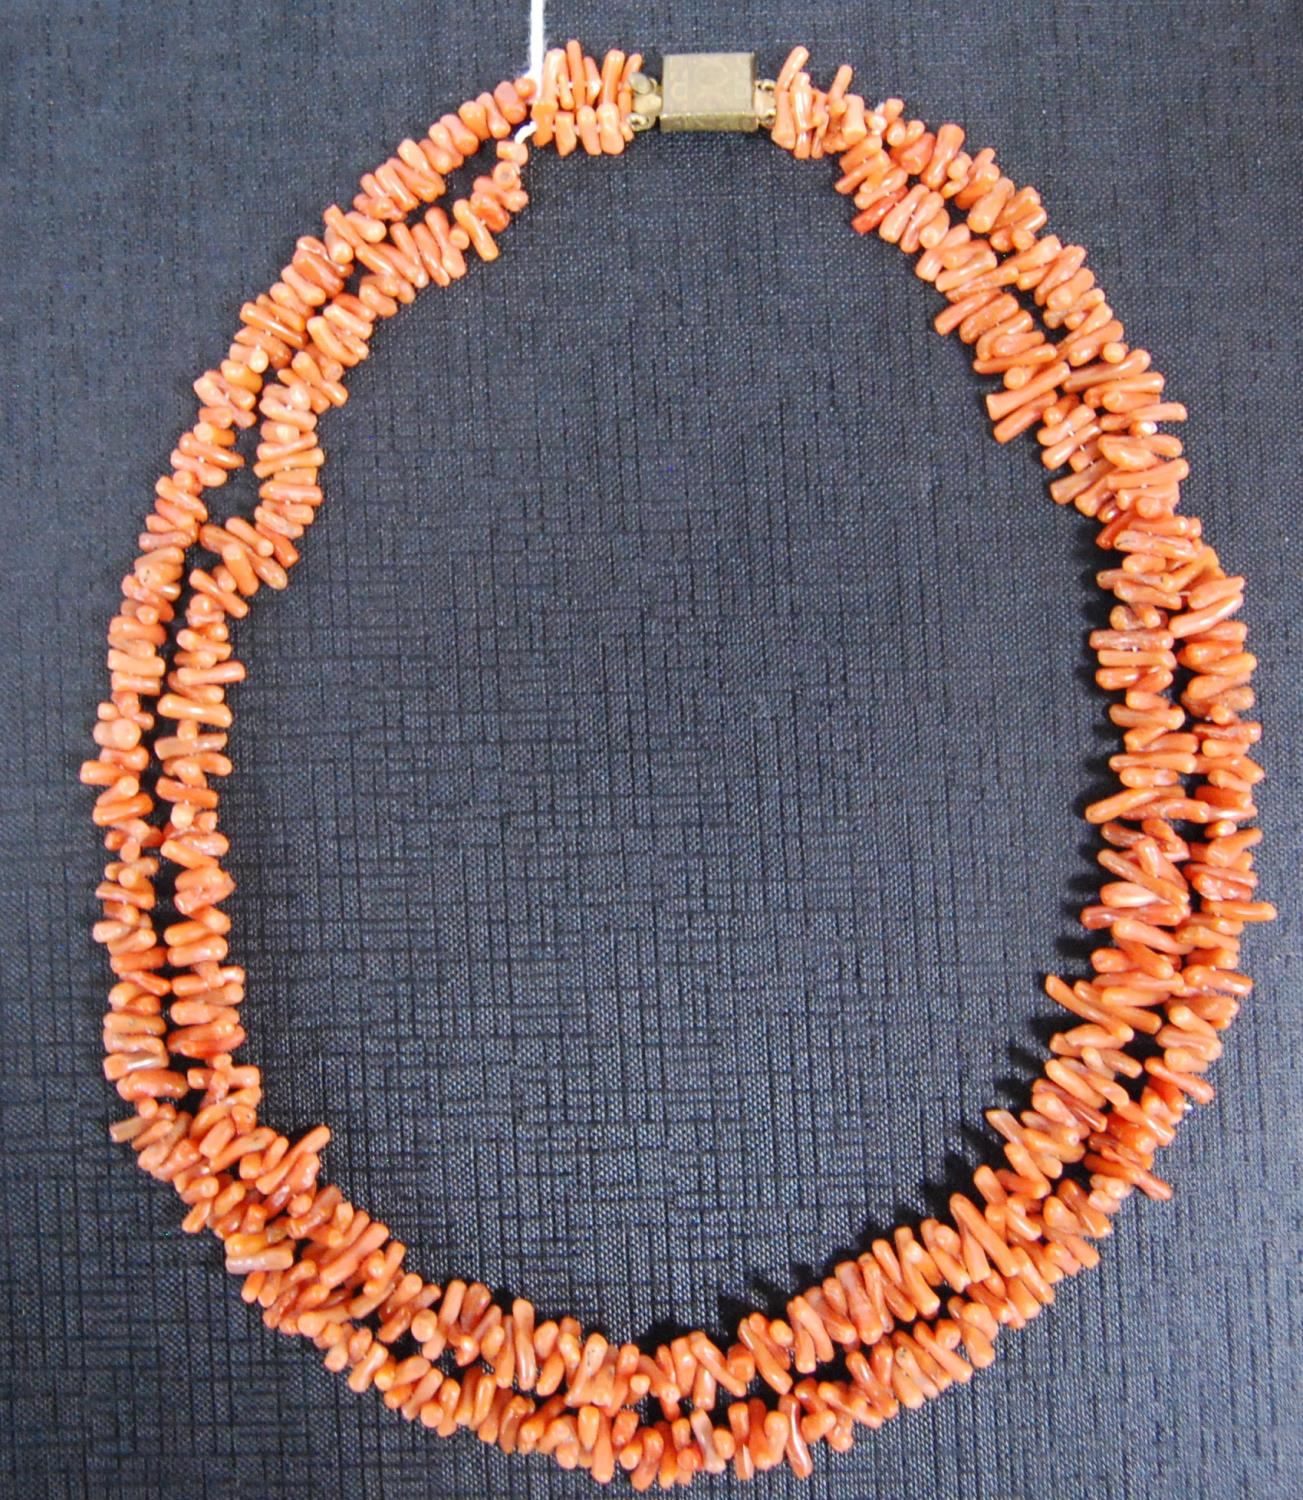 Vintage pink coral double-strand necklace, 49cm long. - Image 2 of 2